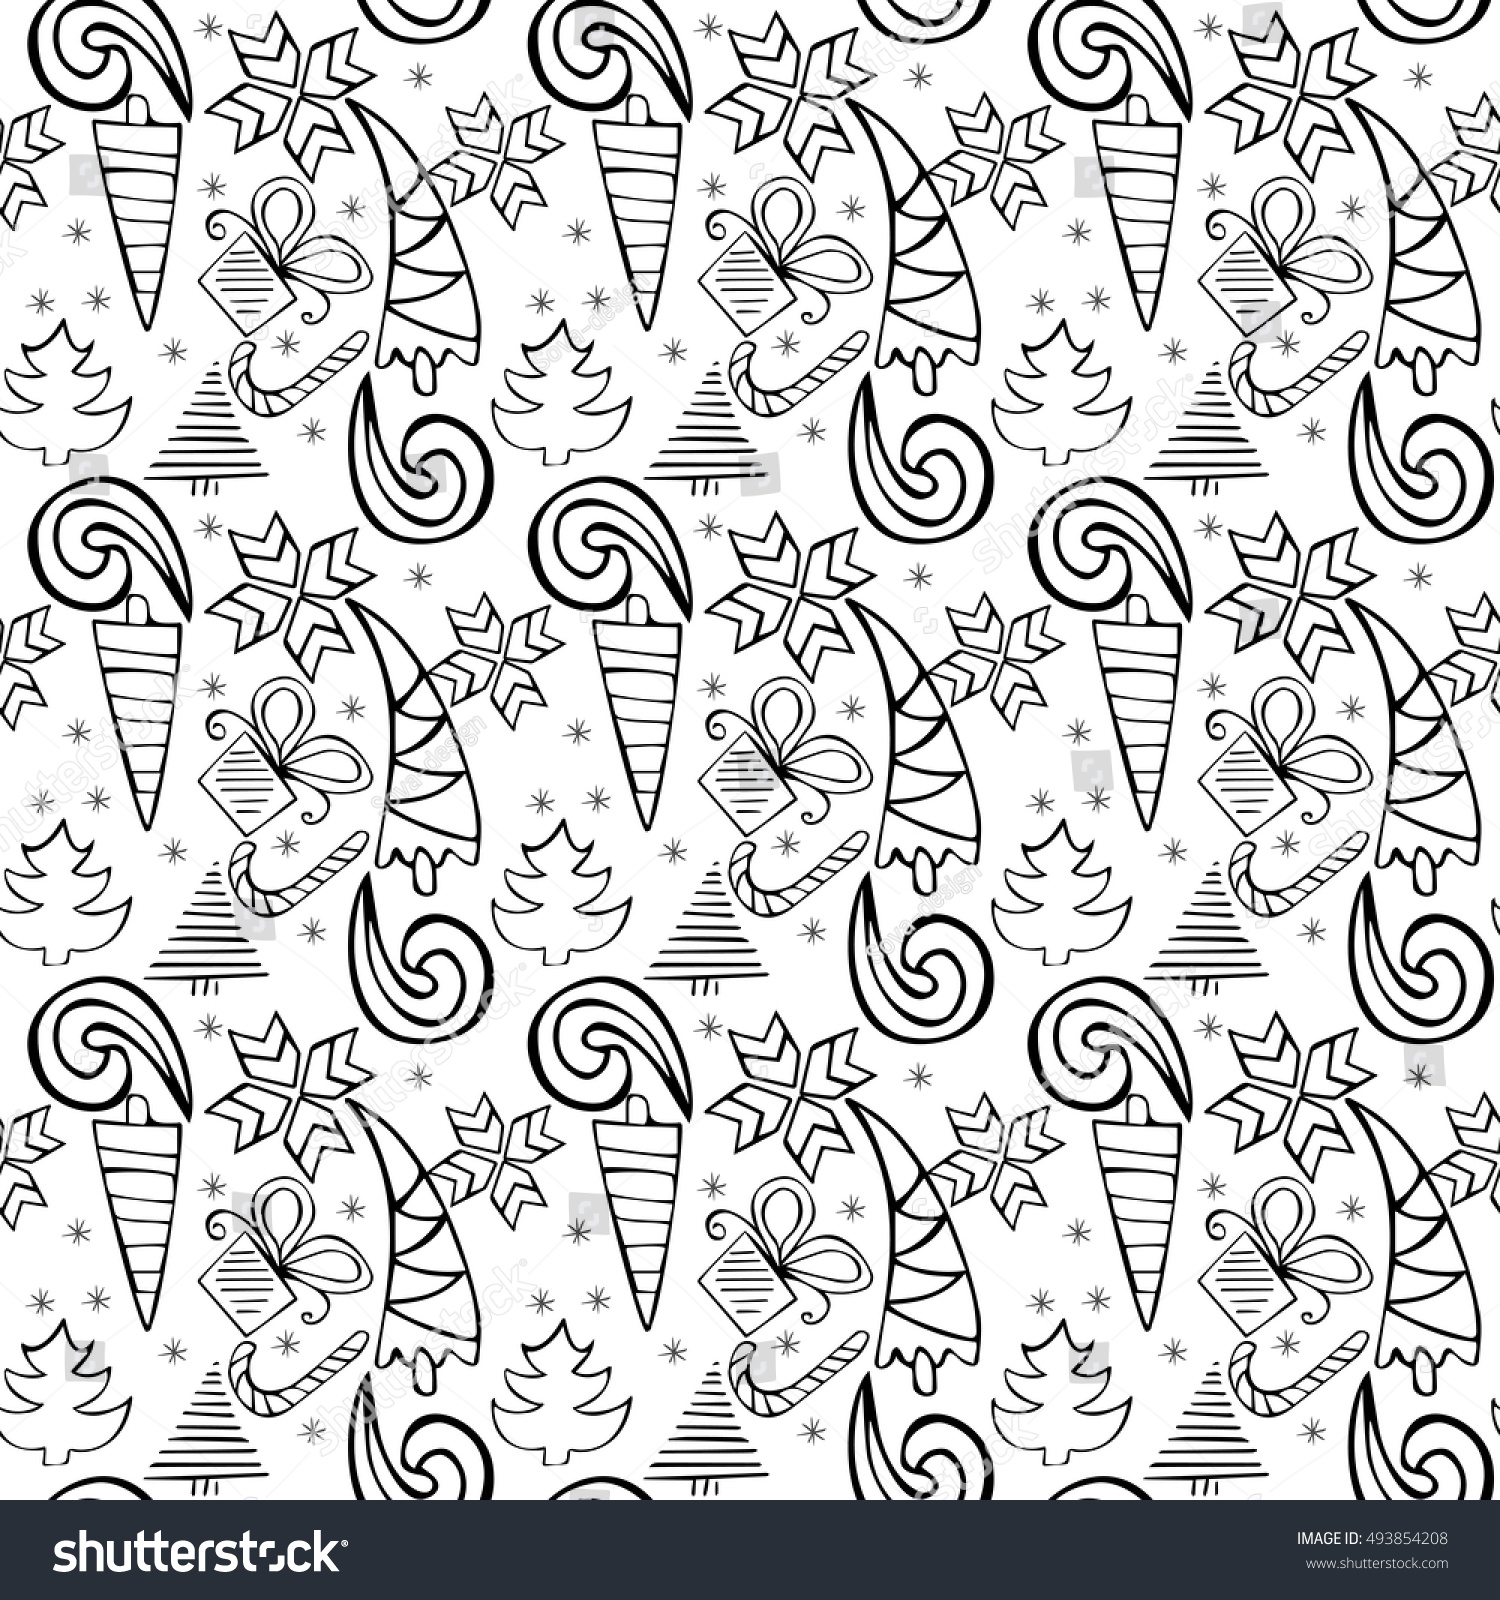 Seamless Doodle Christmas Themed Pattern Add Colors Anti Stress Coloring Page For Adults